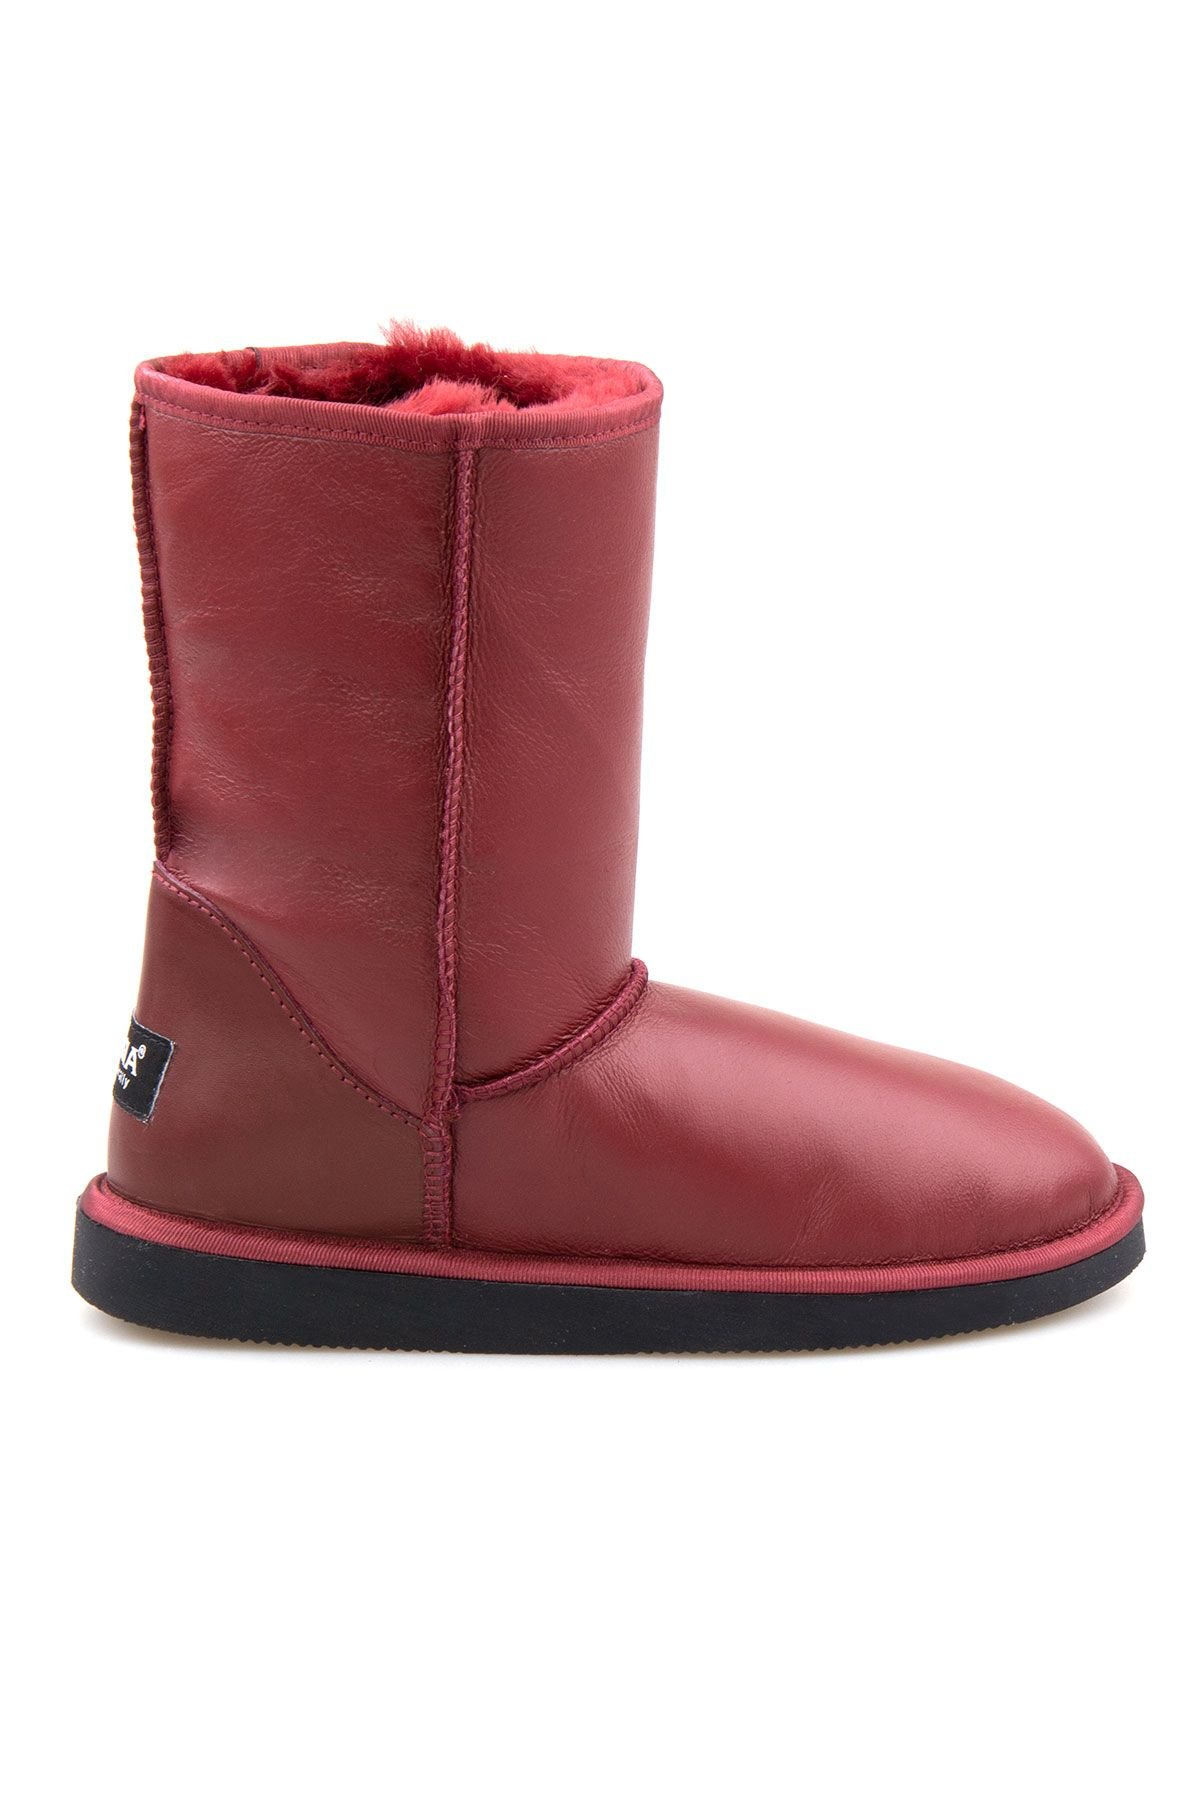 Pegia Shearling Women's Boots 191077 Claret red